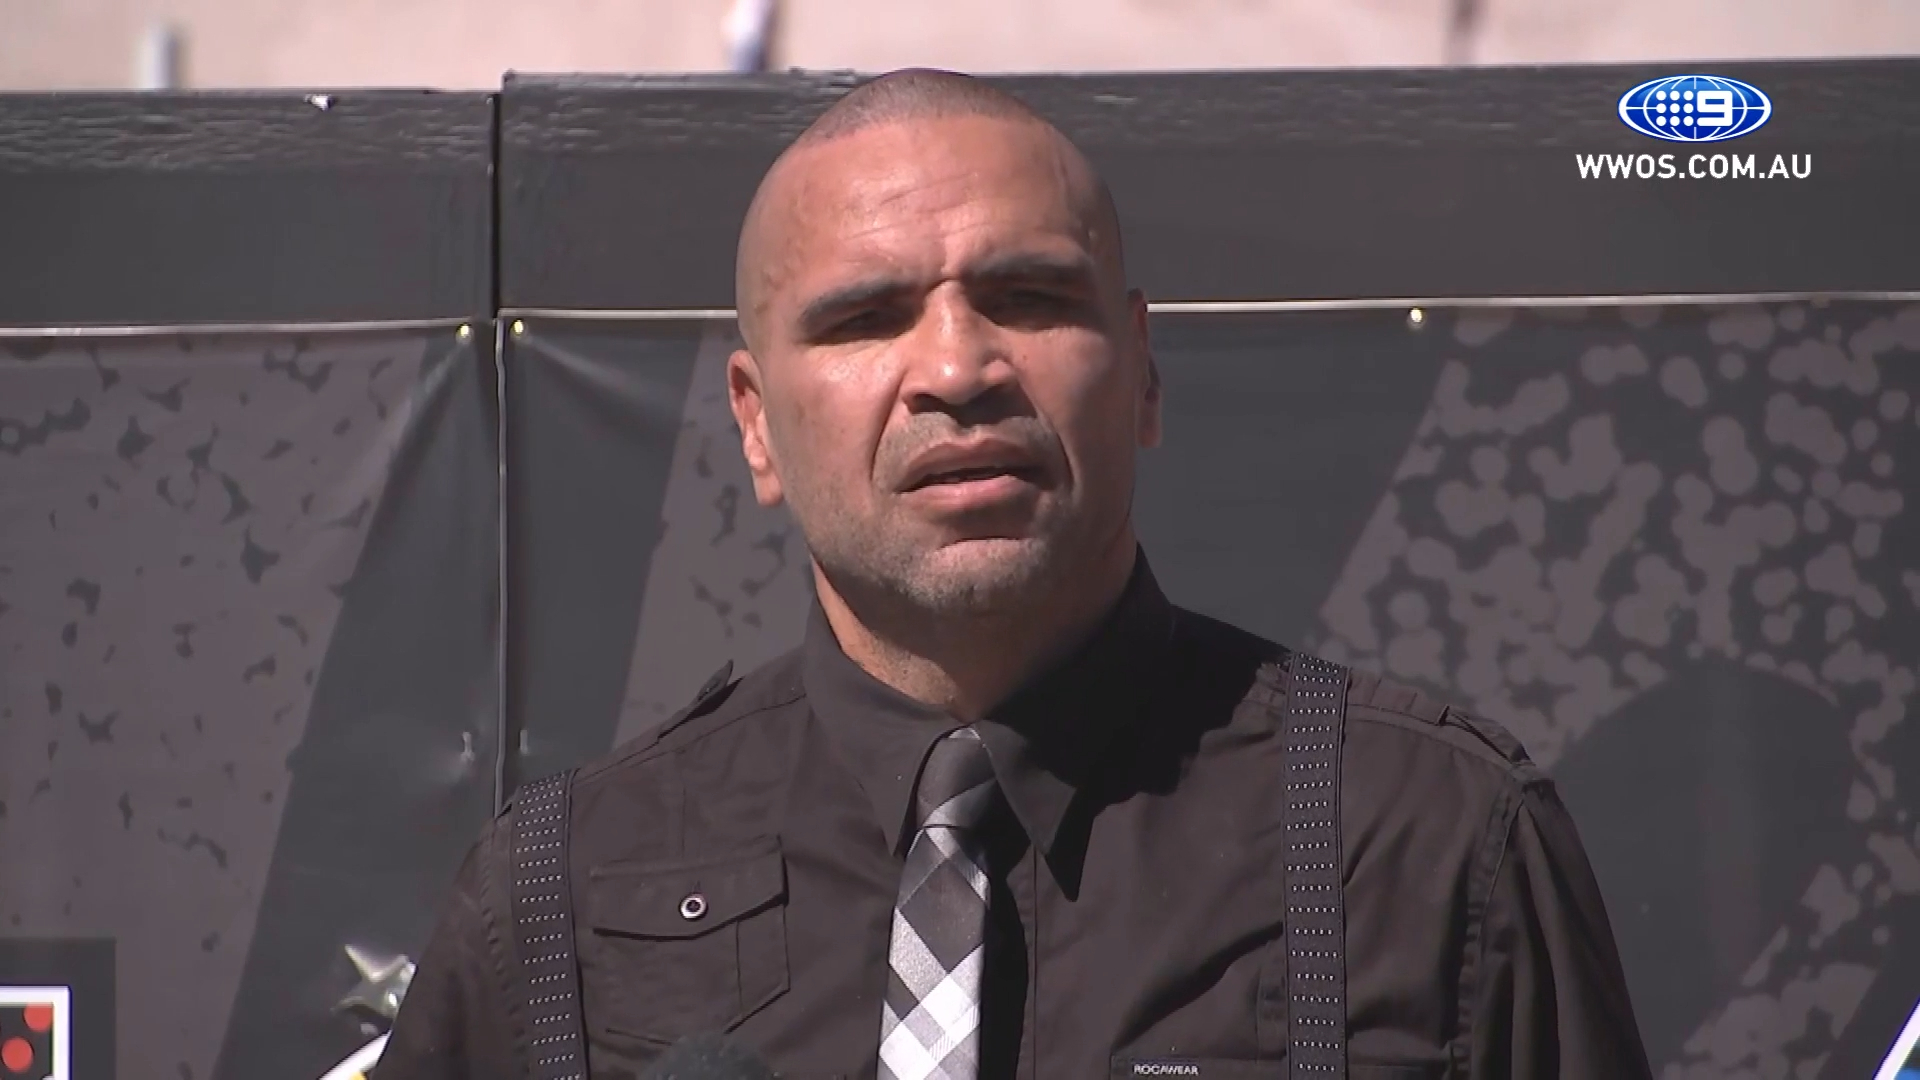 Mundine fesses up on 9-11 remark